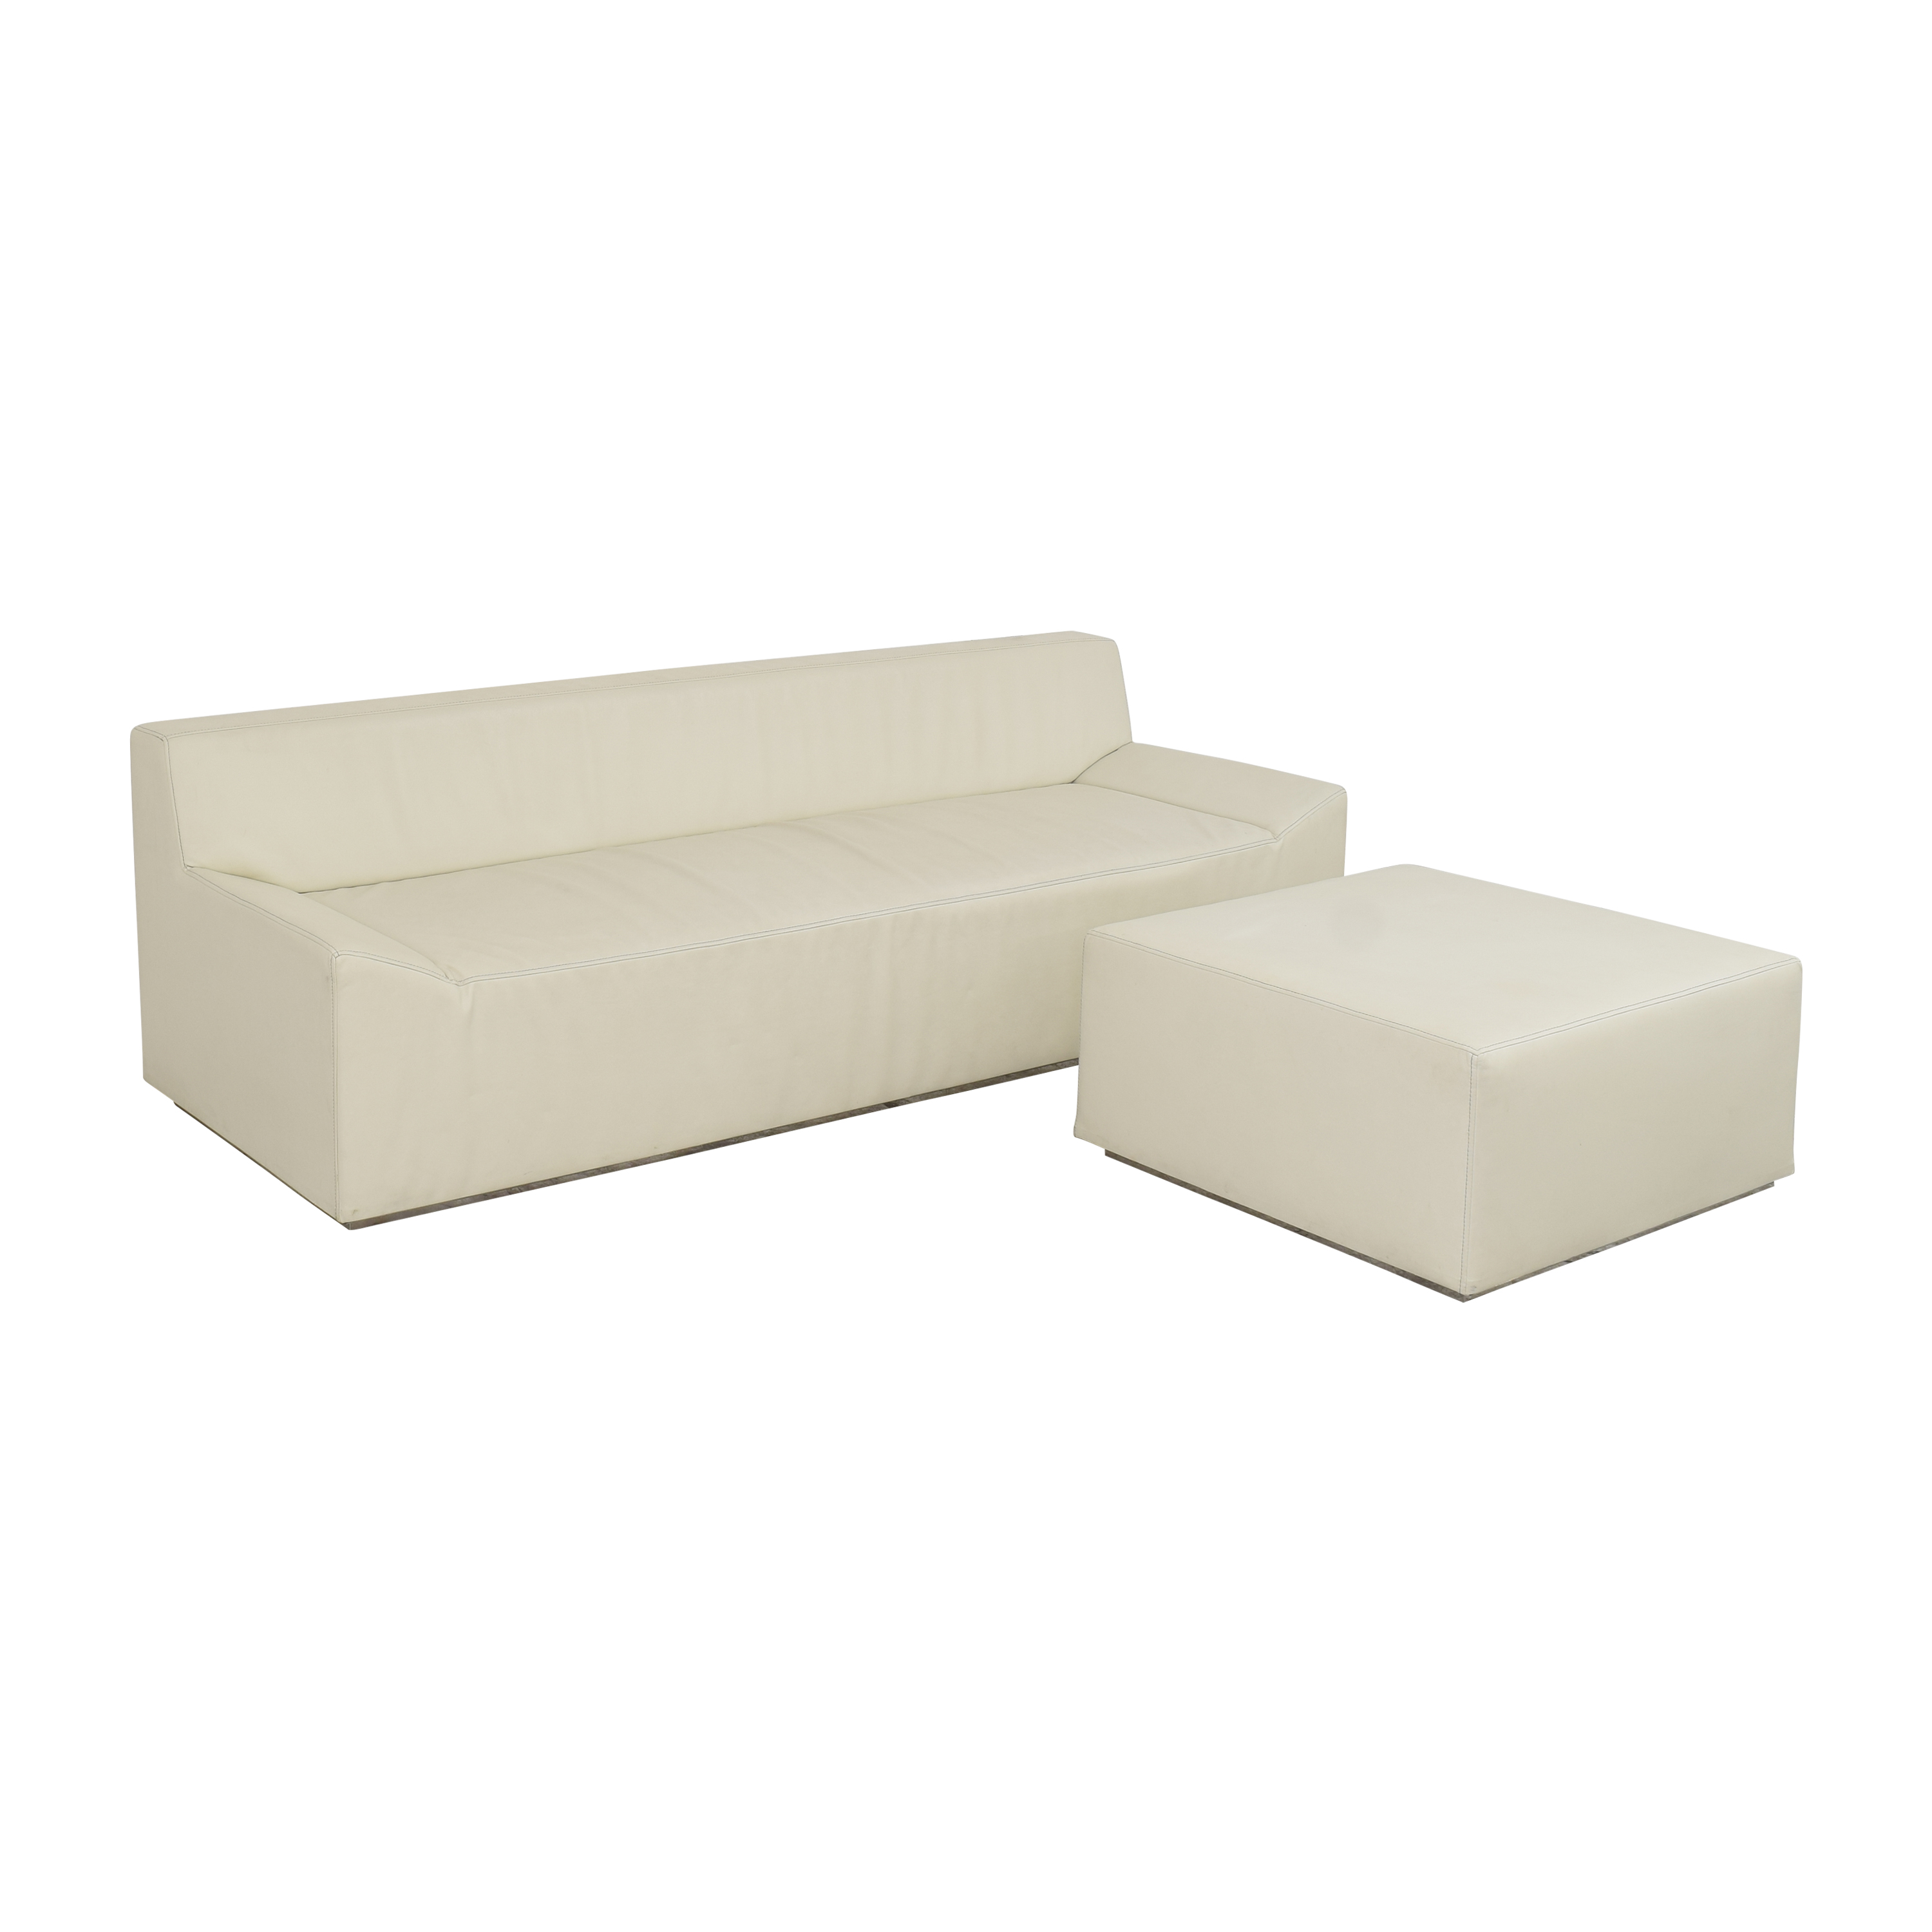 Blu Dot Couchoid Sofa with Blockoid Ottoman / Classic Sofas